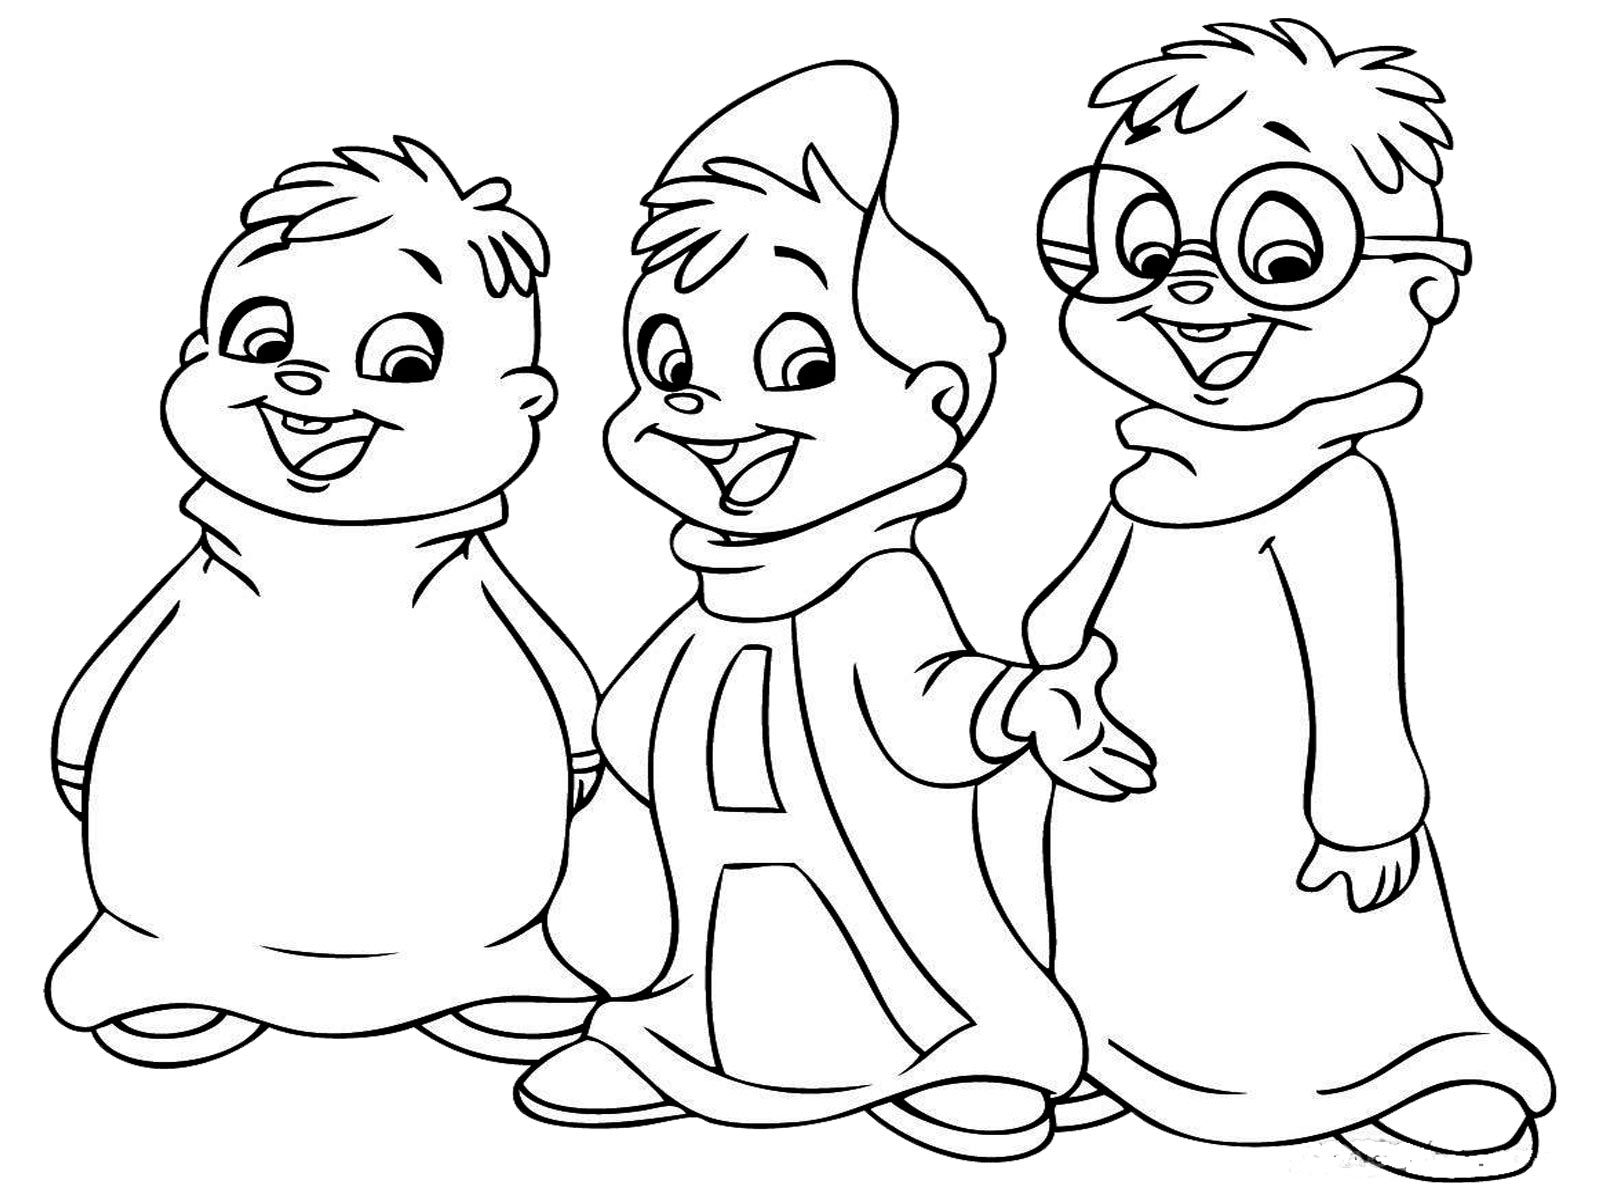 alvin and the chipmunks coloring pages for kids cartoon coloring advocare meals pinterest cartoon coloring pages for kids and the ojays